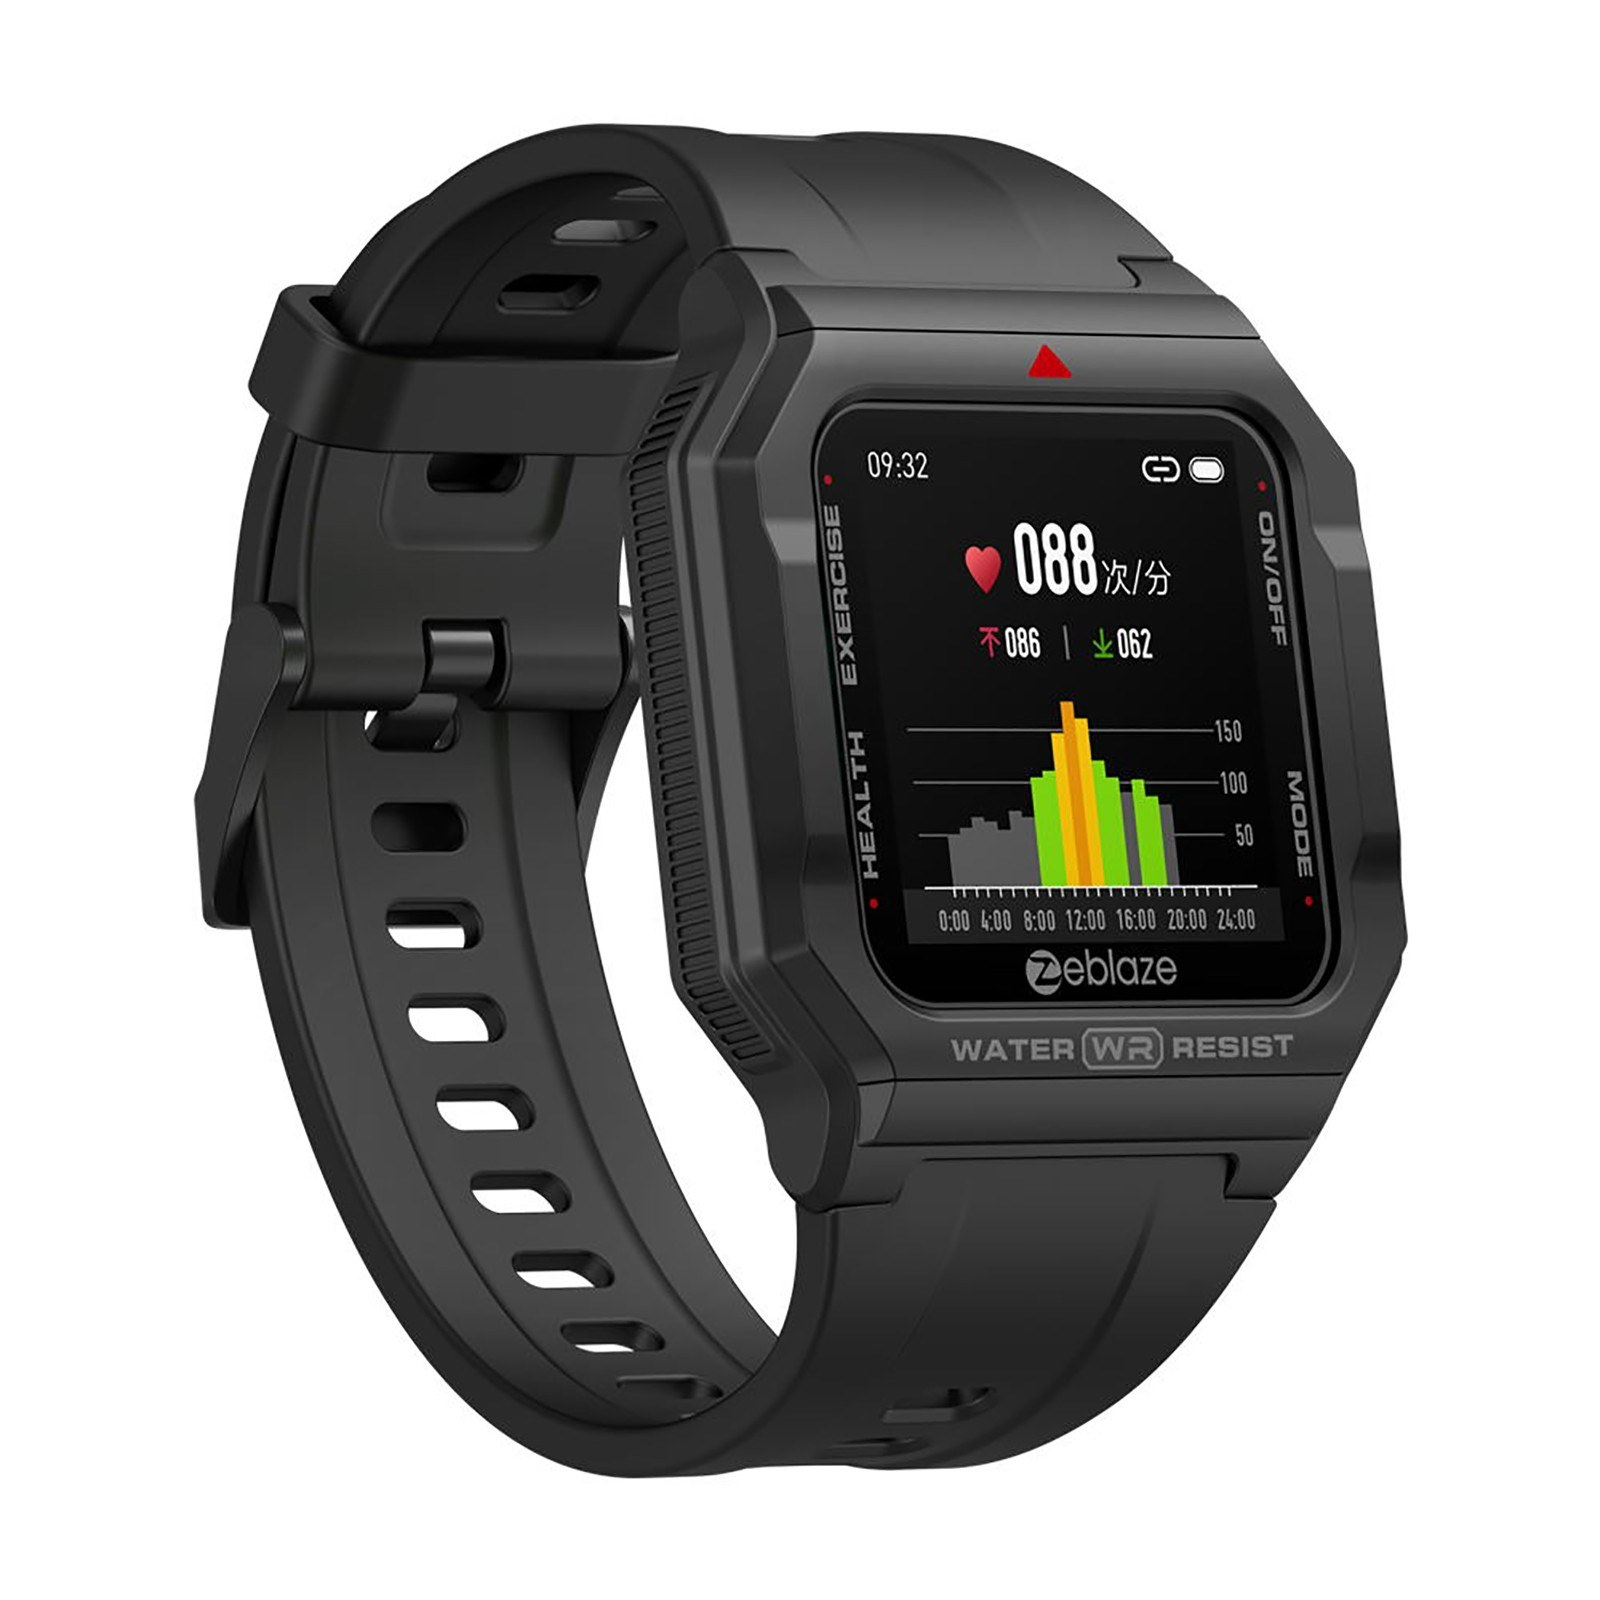 Tomtop - 61% OFF Zeblaze Ares 1.3-Inch IPS Screen Smart Watch, Free Shipping $27.99